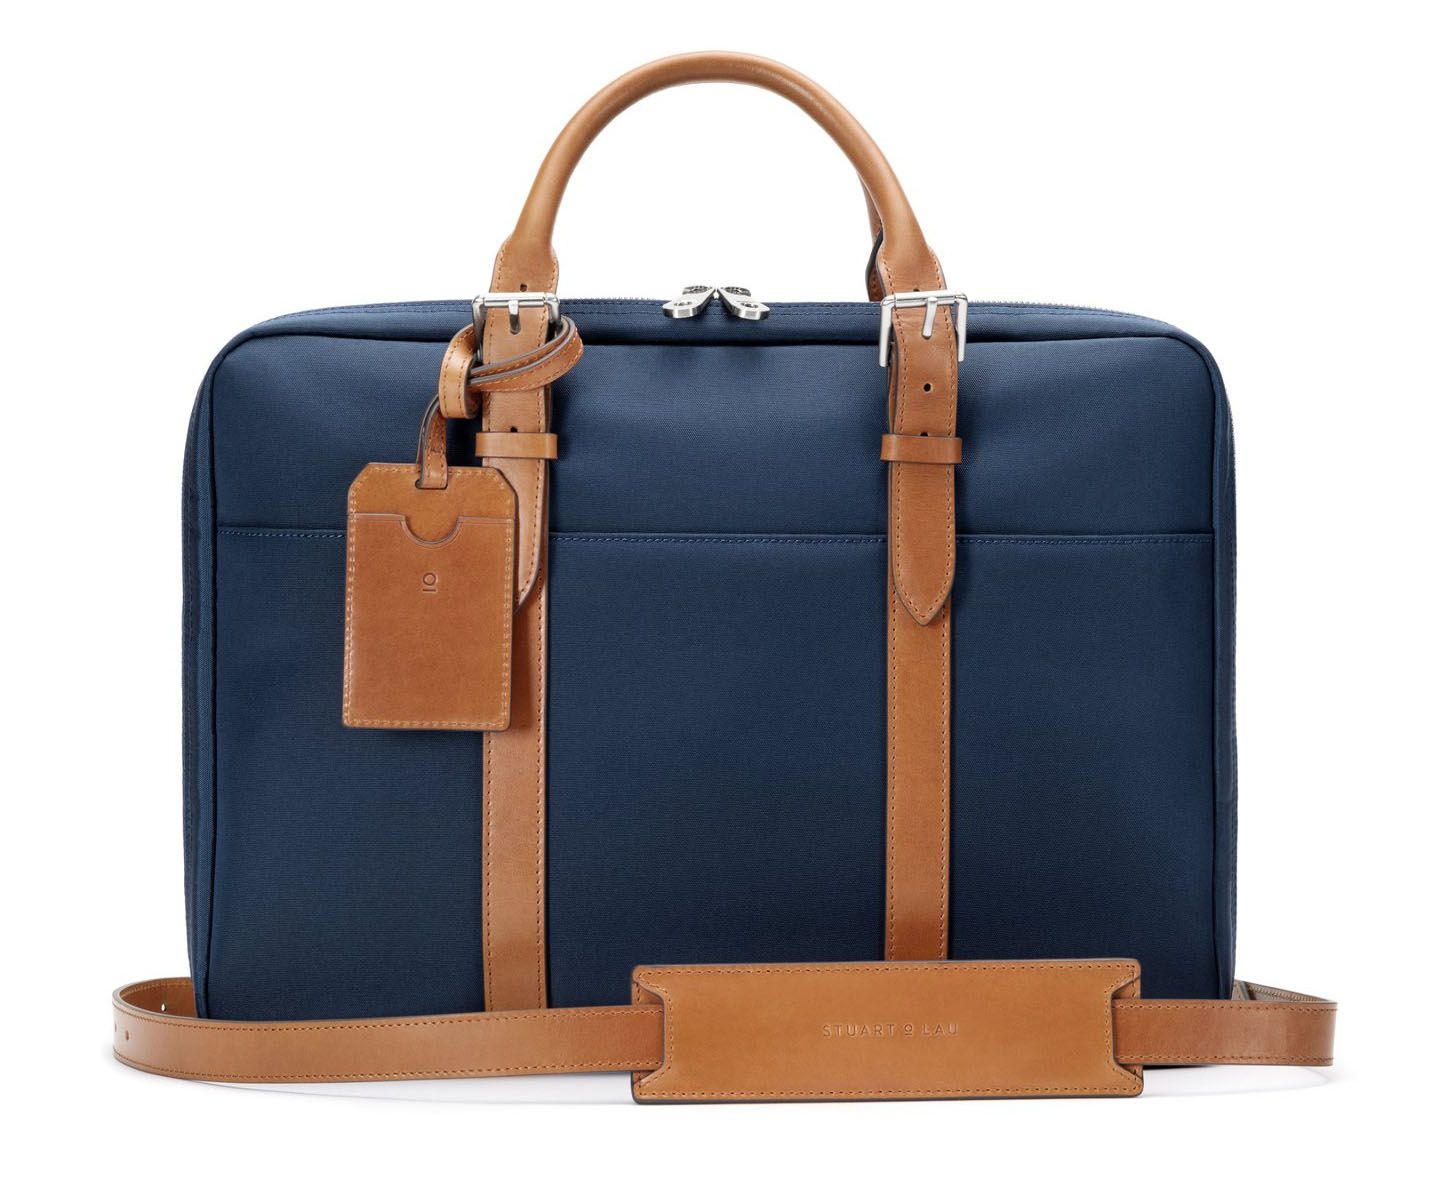 The Cary Briefcase from Stuart & Lau